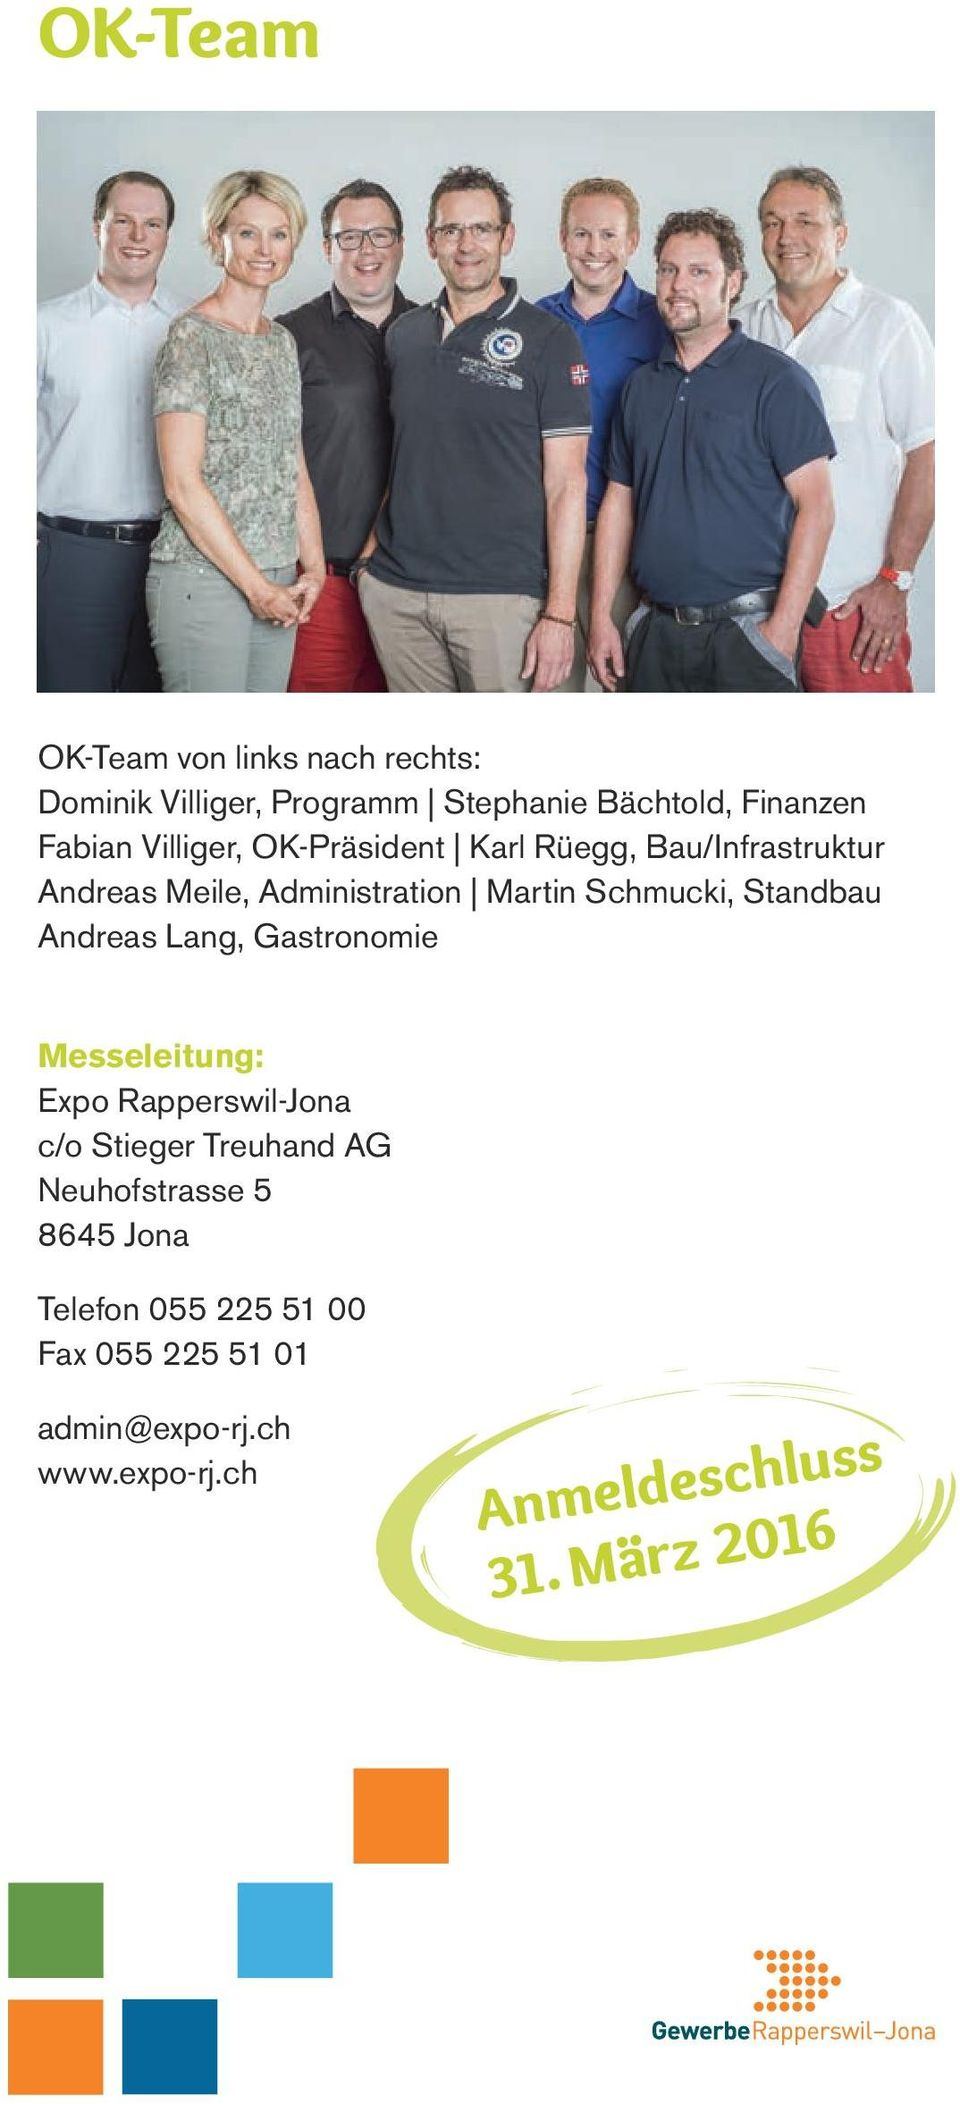 Standbau Andreas Lang, Gastronomie Messeleitung: Expo Rapperswil-Jona c/o Stieger Treuhand AG